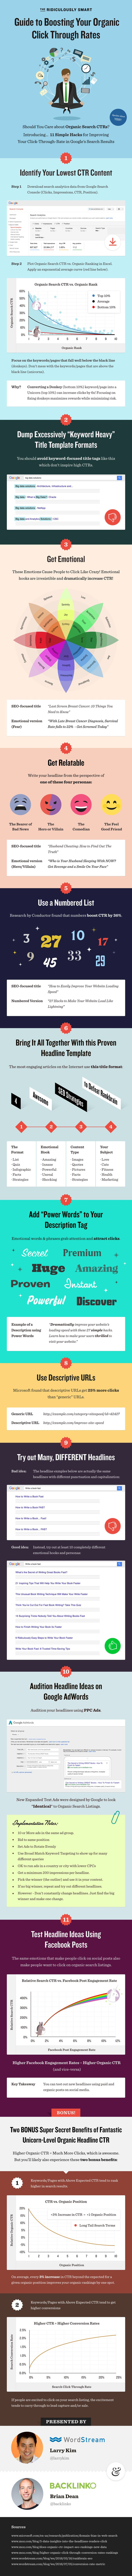 organic-seo-ctr-infographic.png (1160×22640)